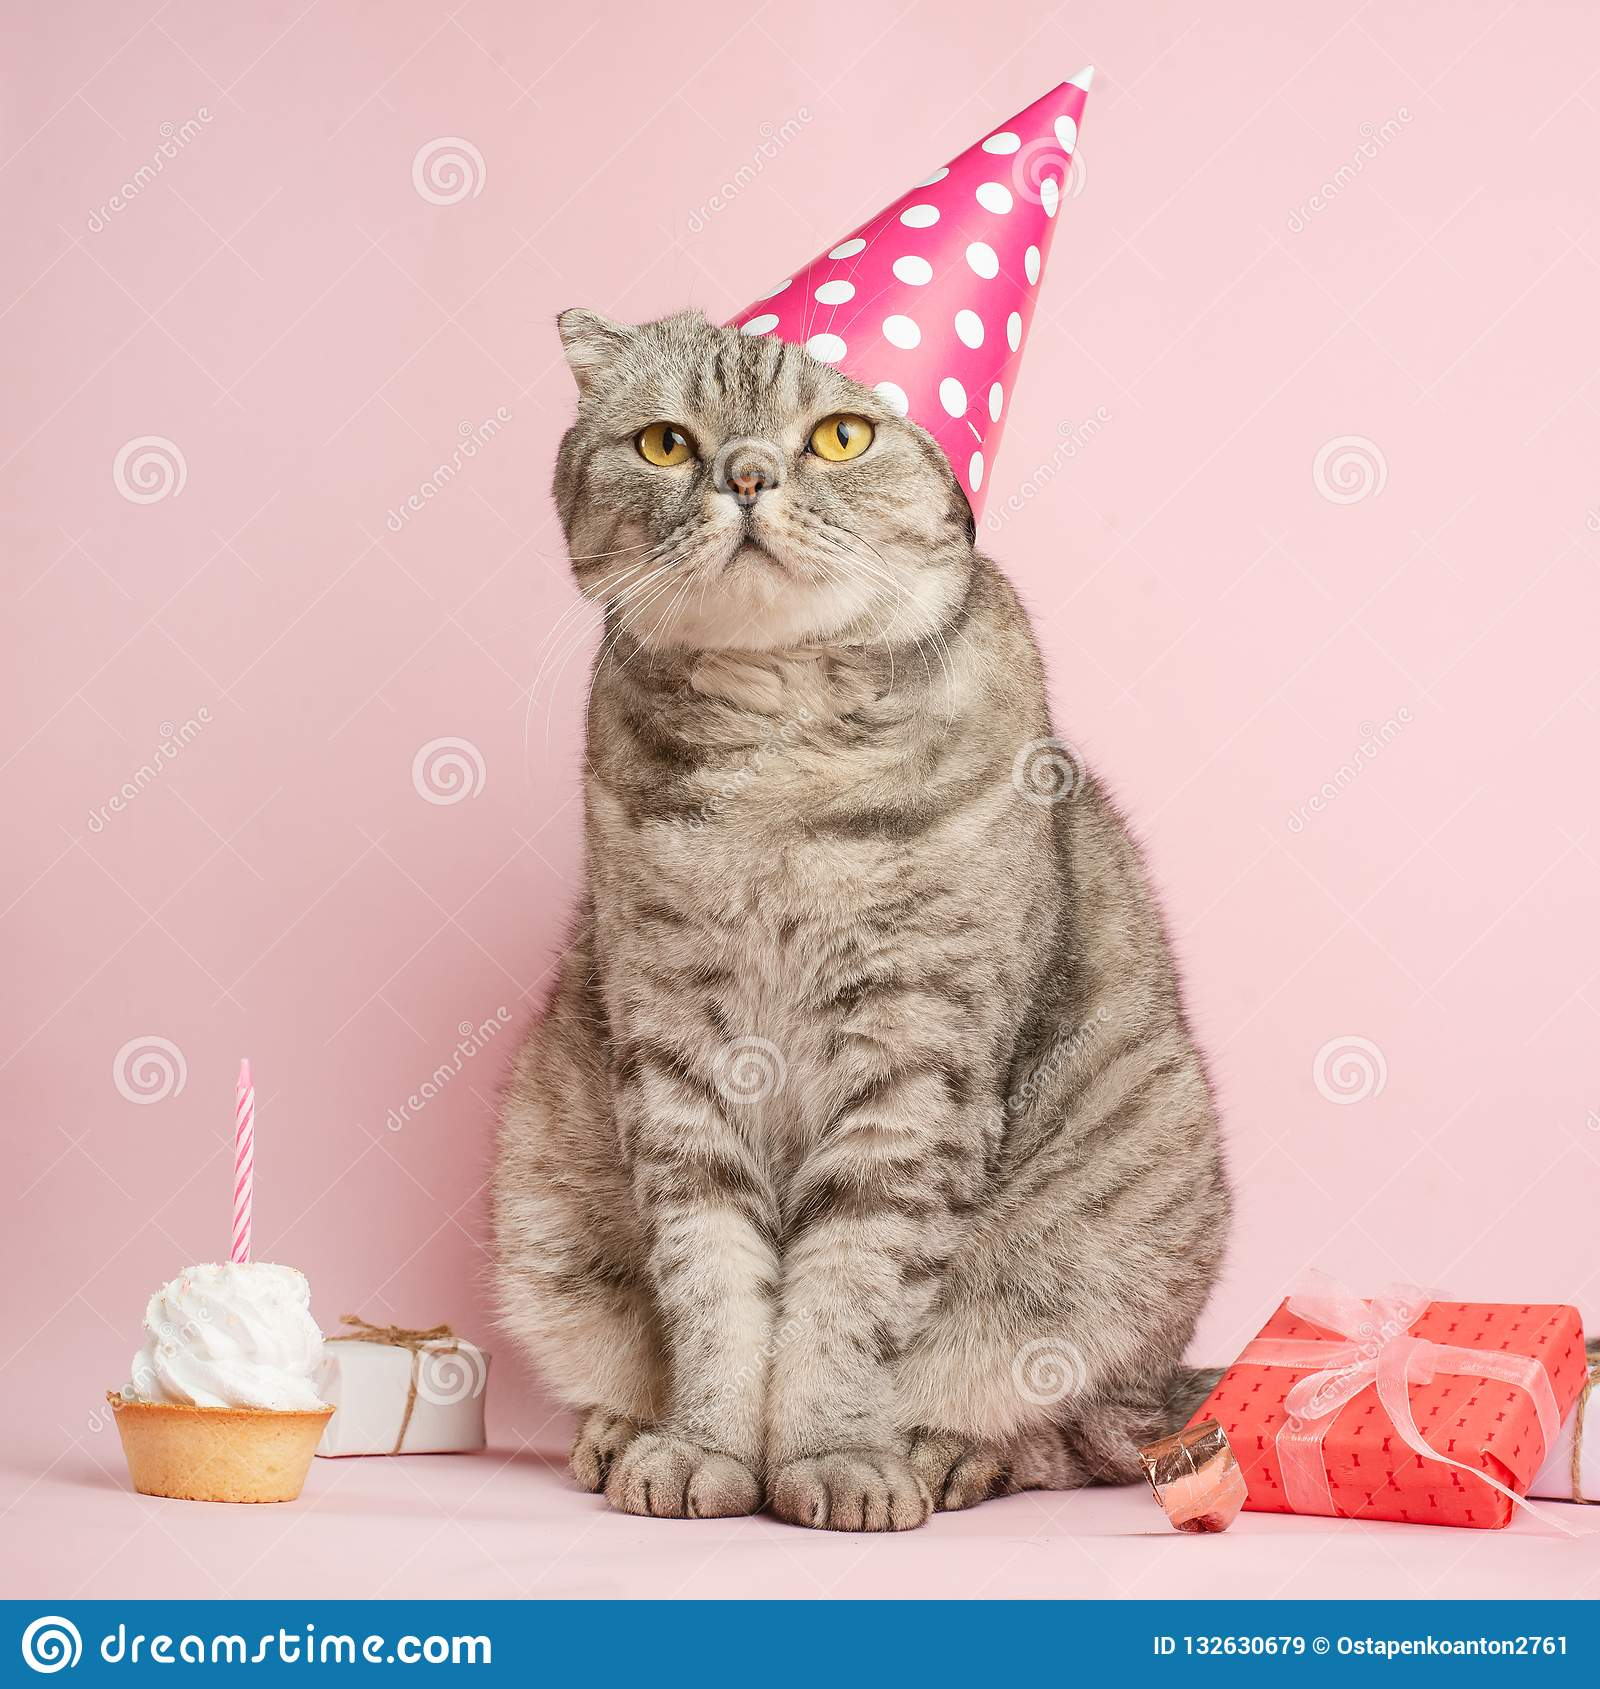 Birthday Greetings From A Cat